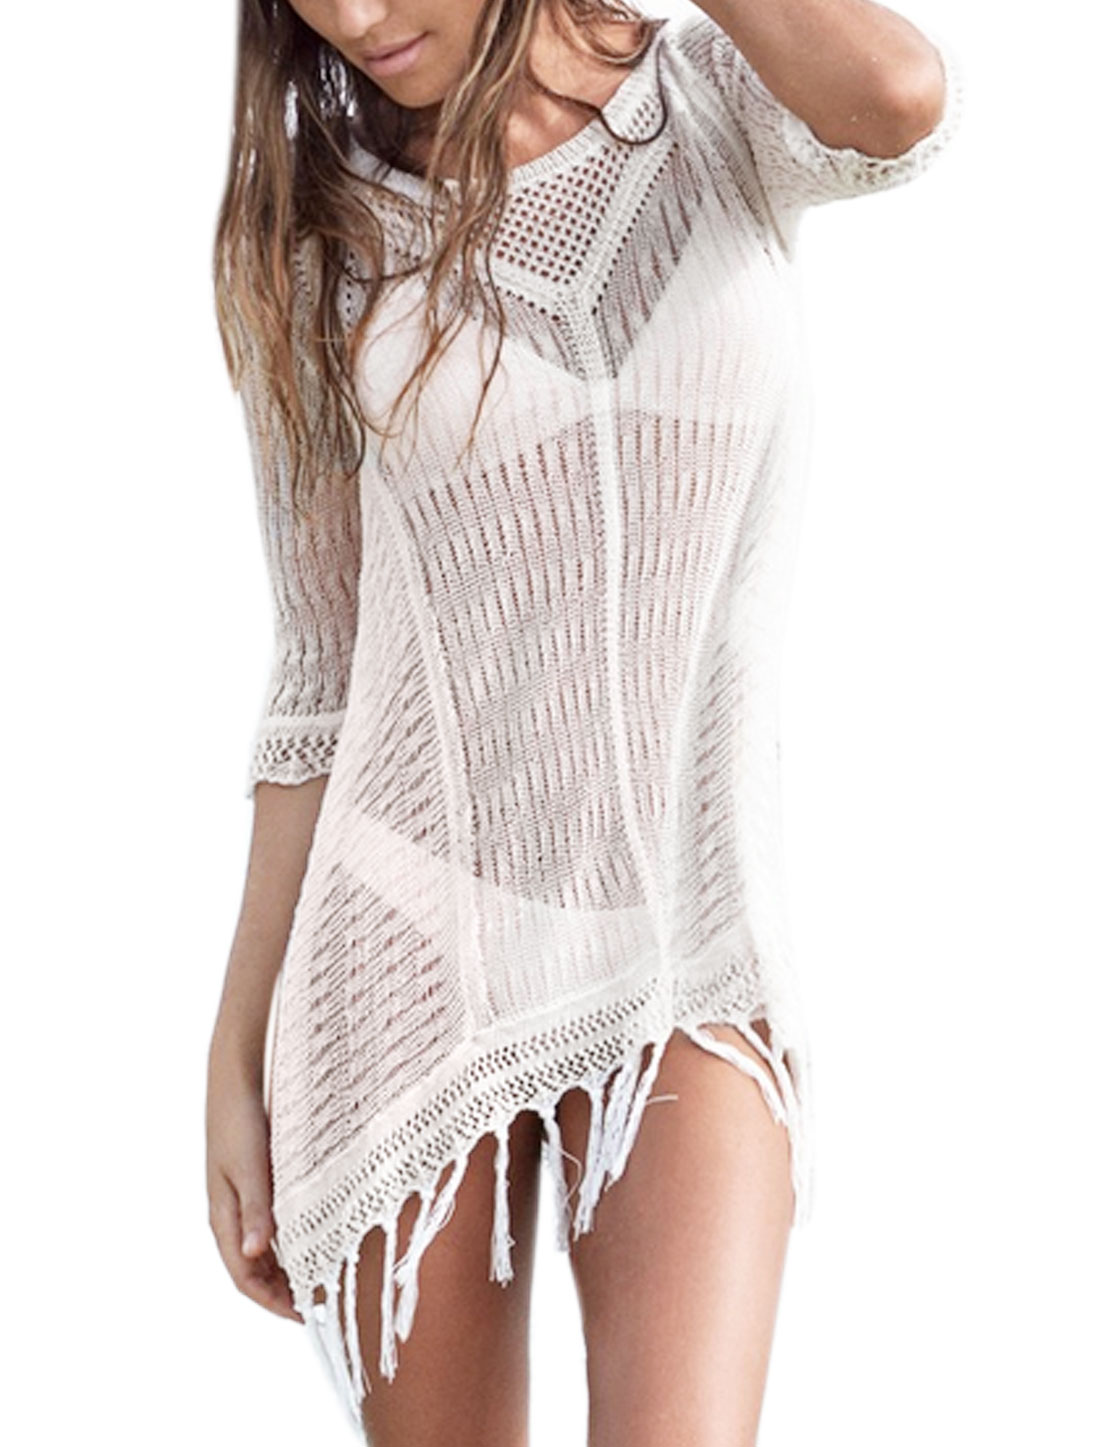 Women Hollow Out Fringed Hem Cover-Up Tunic Knit Top White M